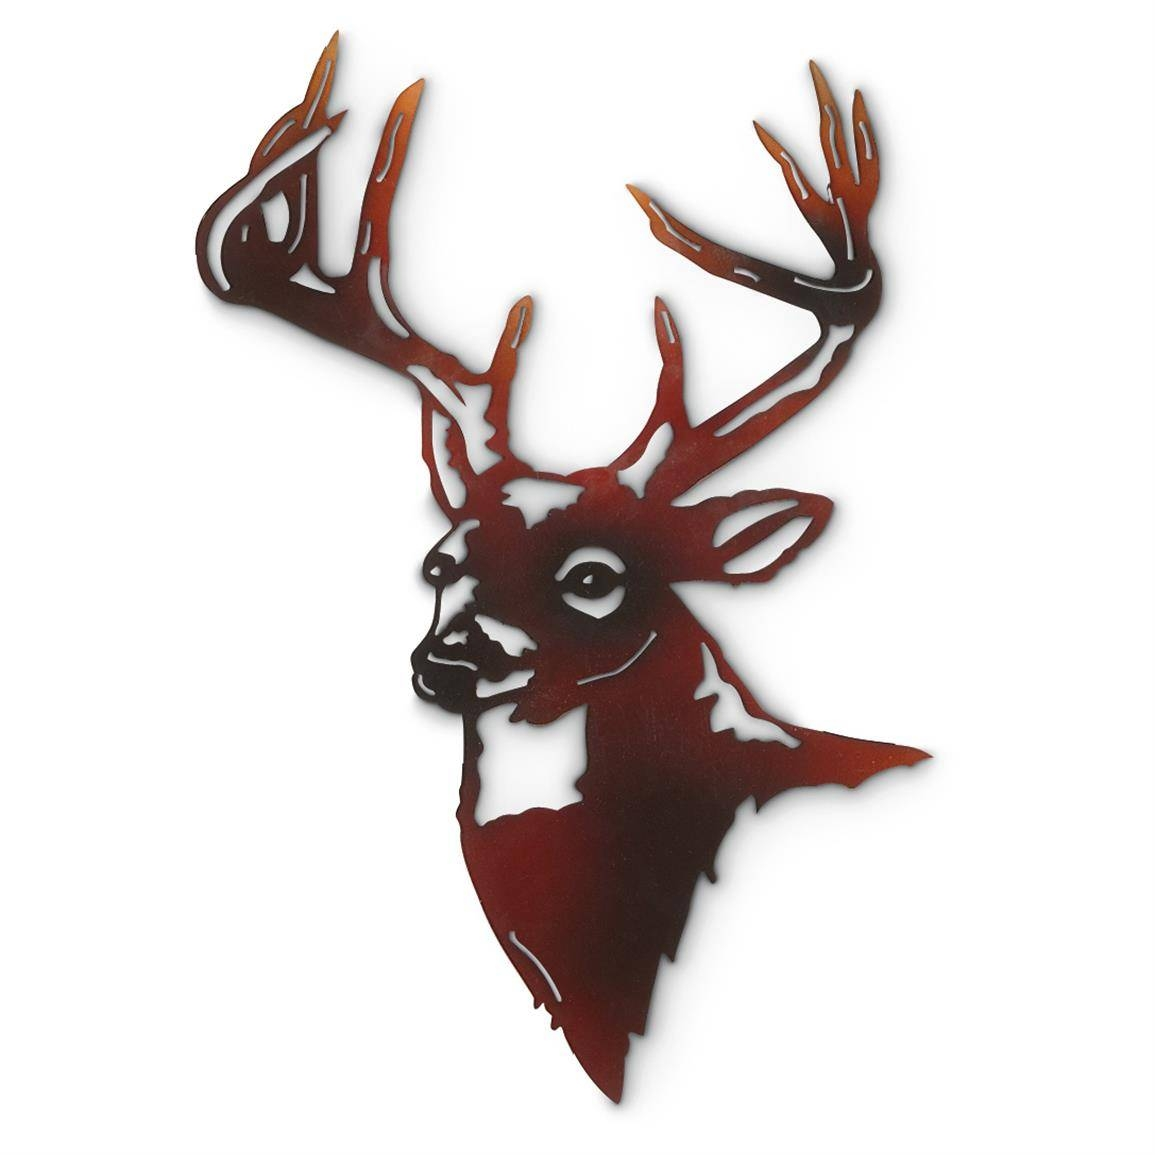 Deer Metal Wall Art – 592473, Wall Art At Sportsman's Guide With Regard To Most Recent Elk Metal Wall Art (View 5 of 20)